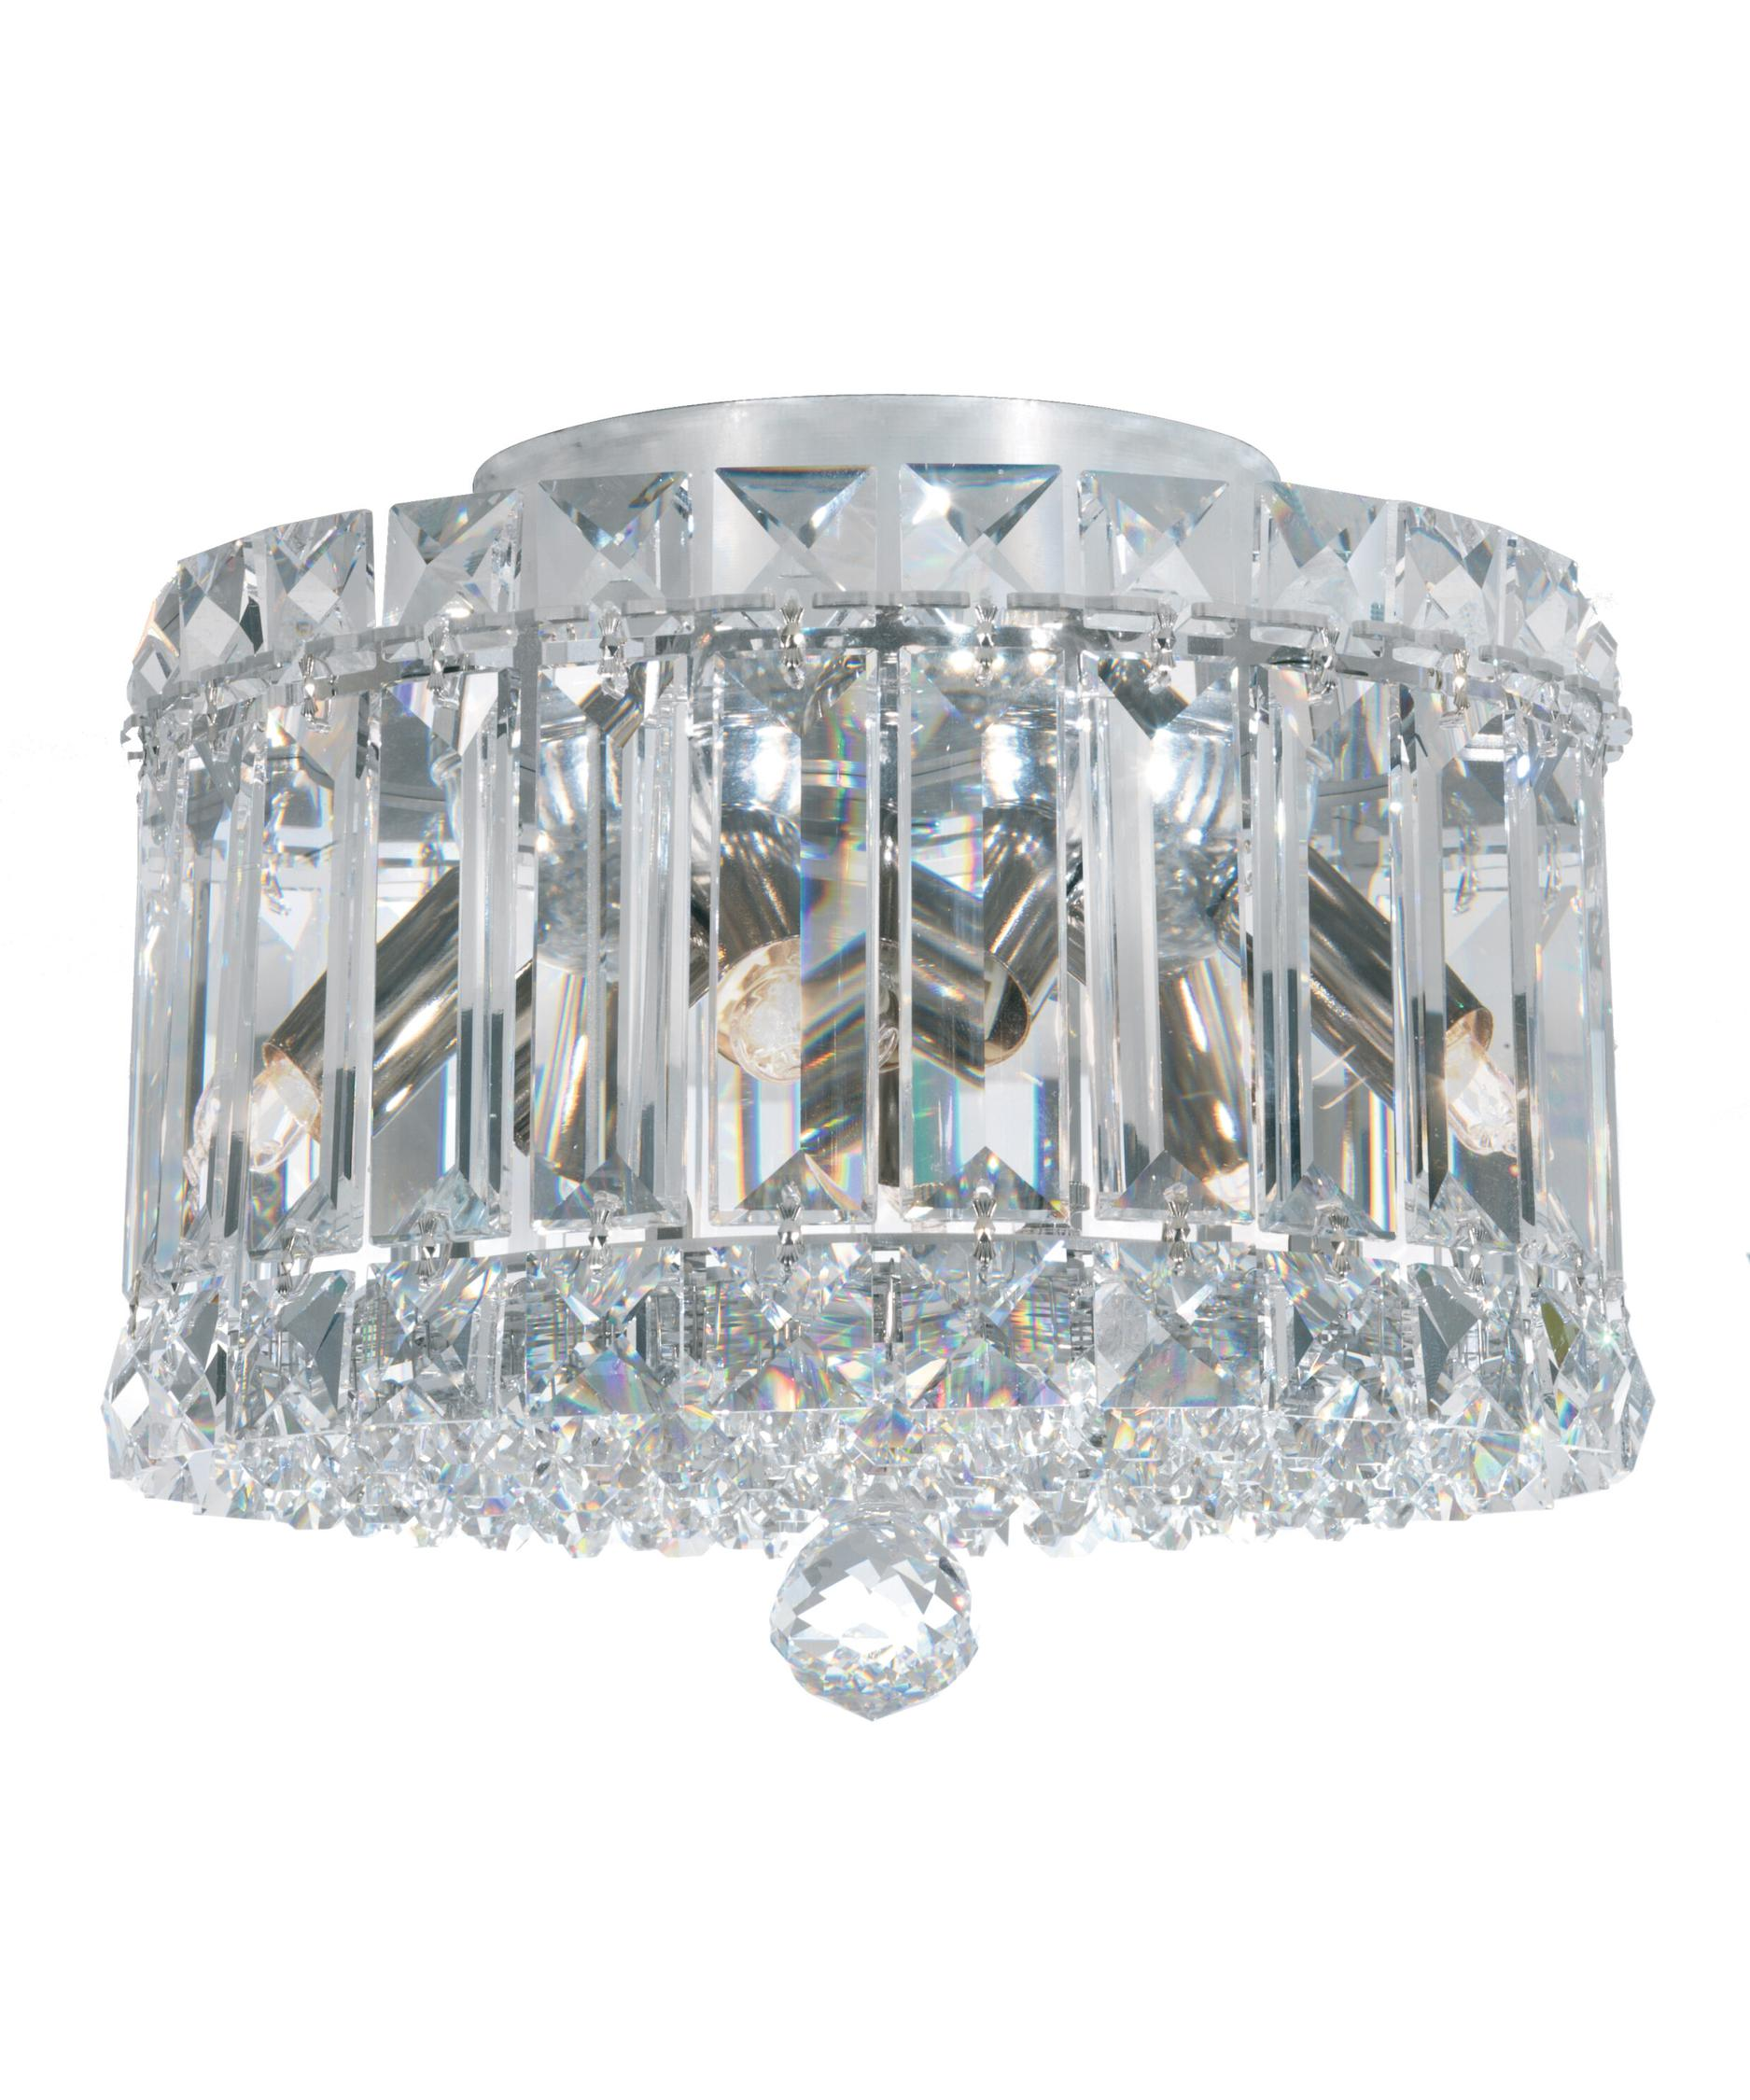 schonbek plaza 8 inch wide flush mount capitol lighting - Schonbek Lighting